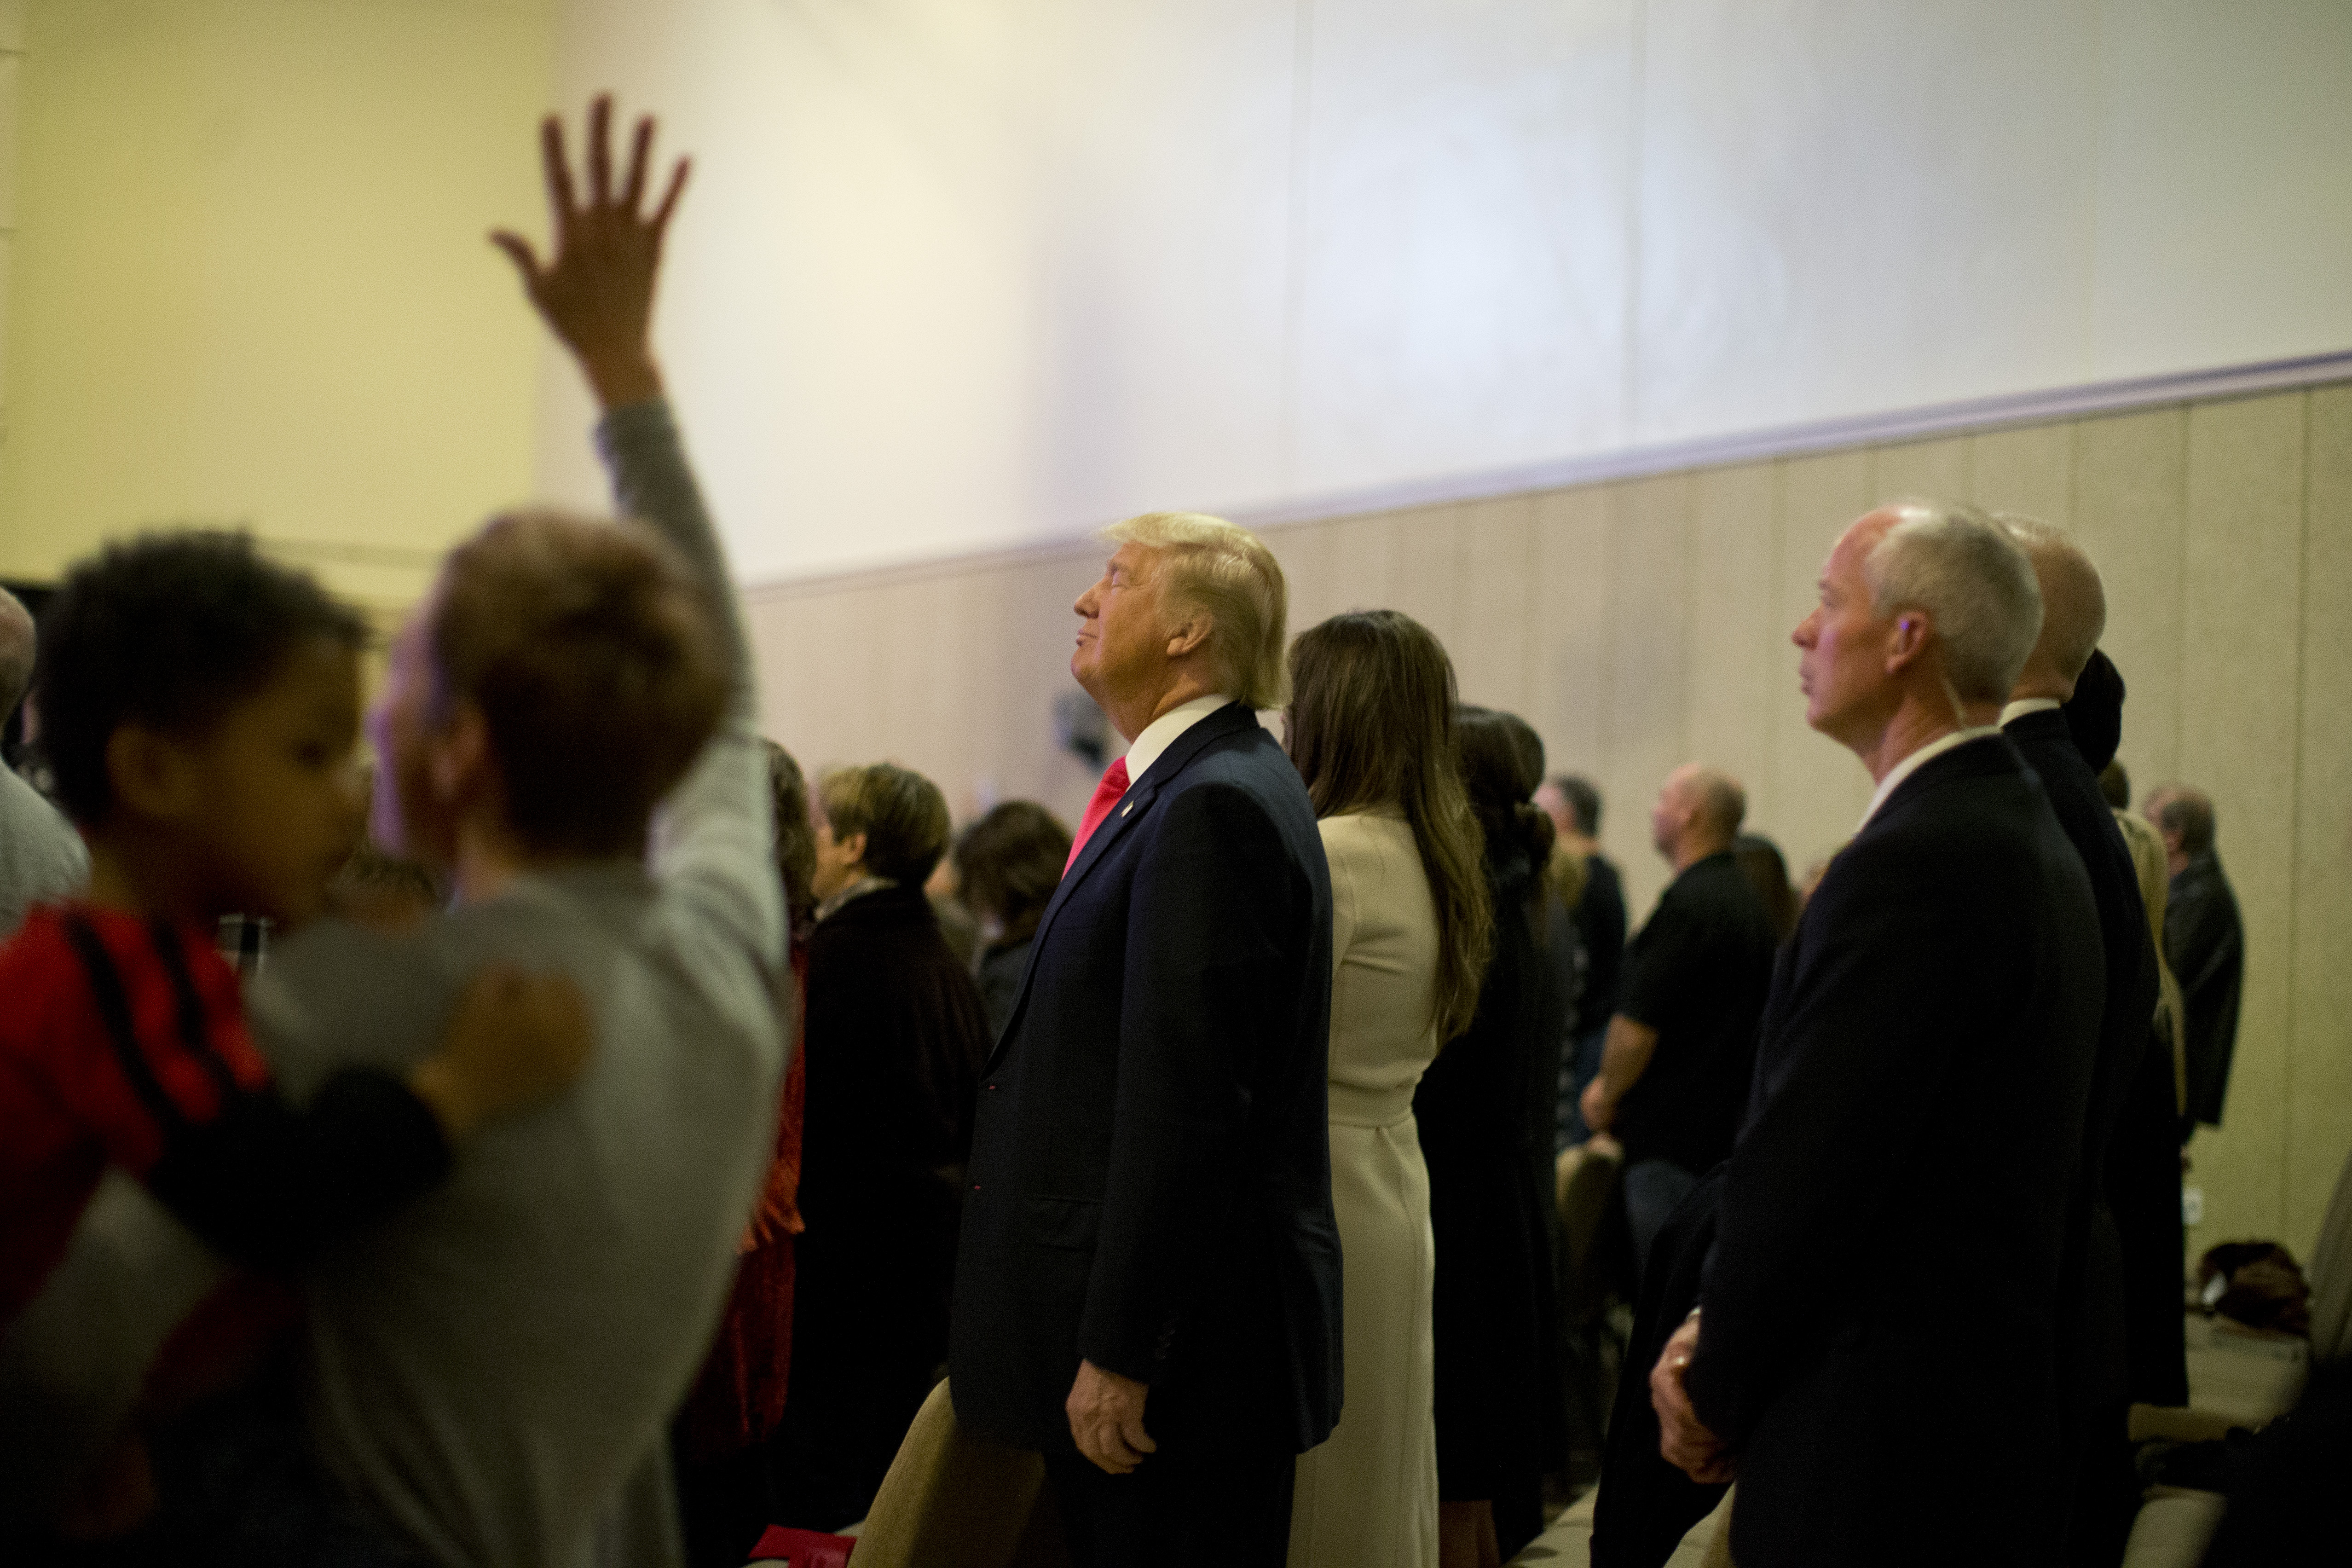 Evangelicals like me can't vote for Trump — or Clinton. Here's what we can do instead. - Vox